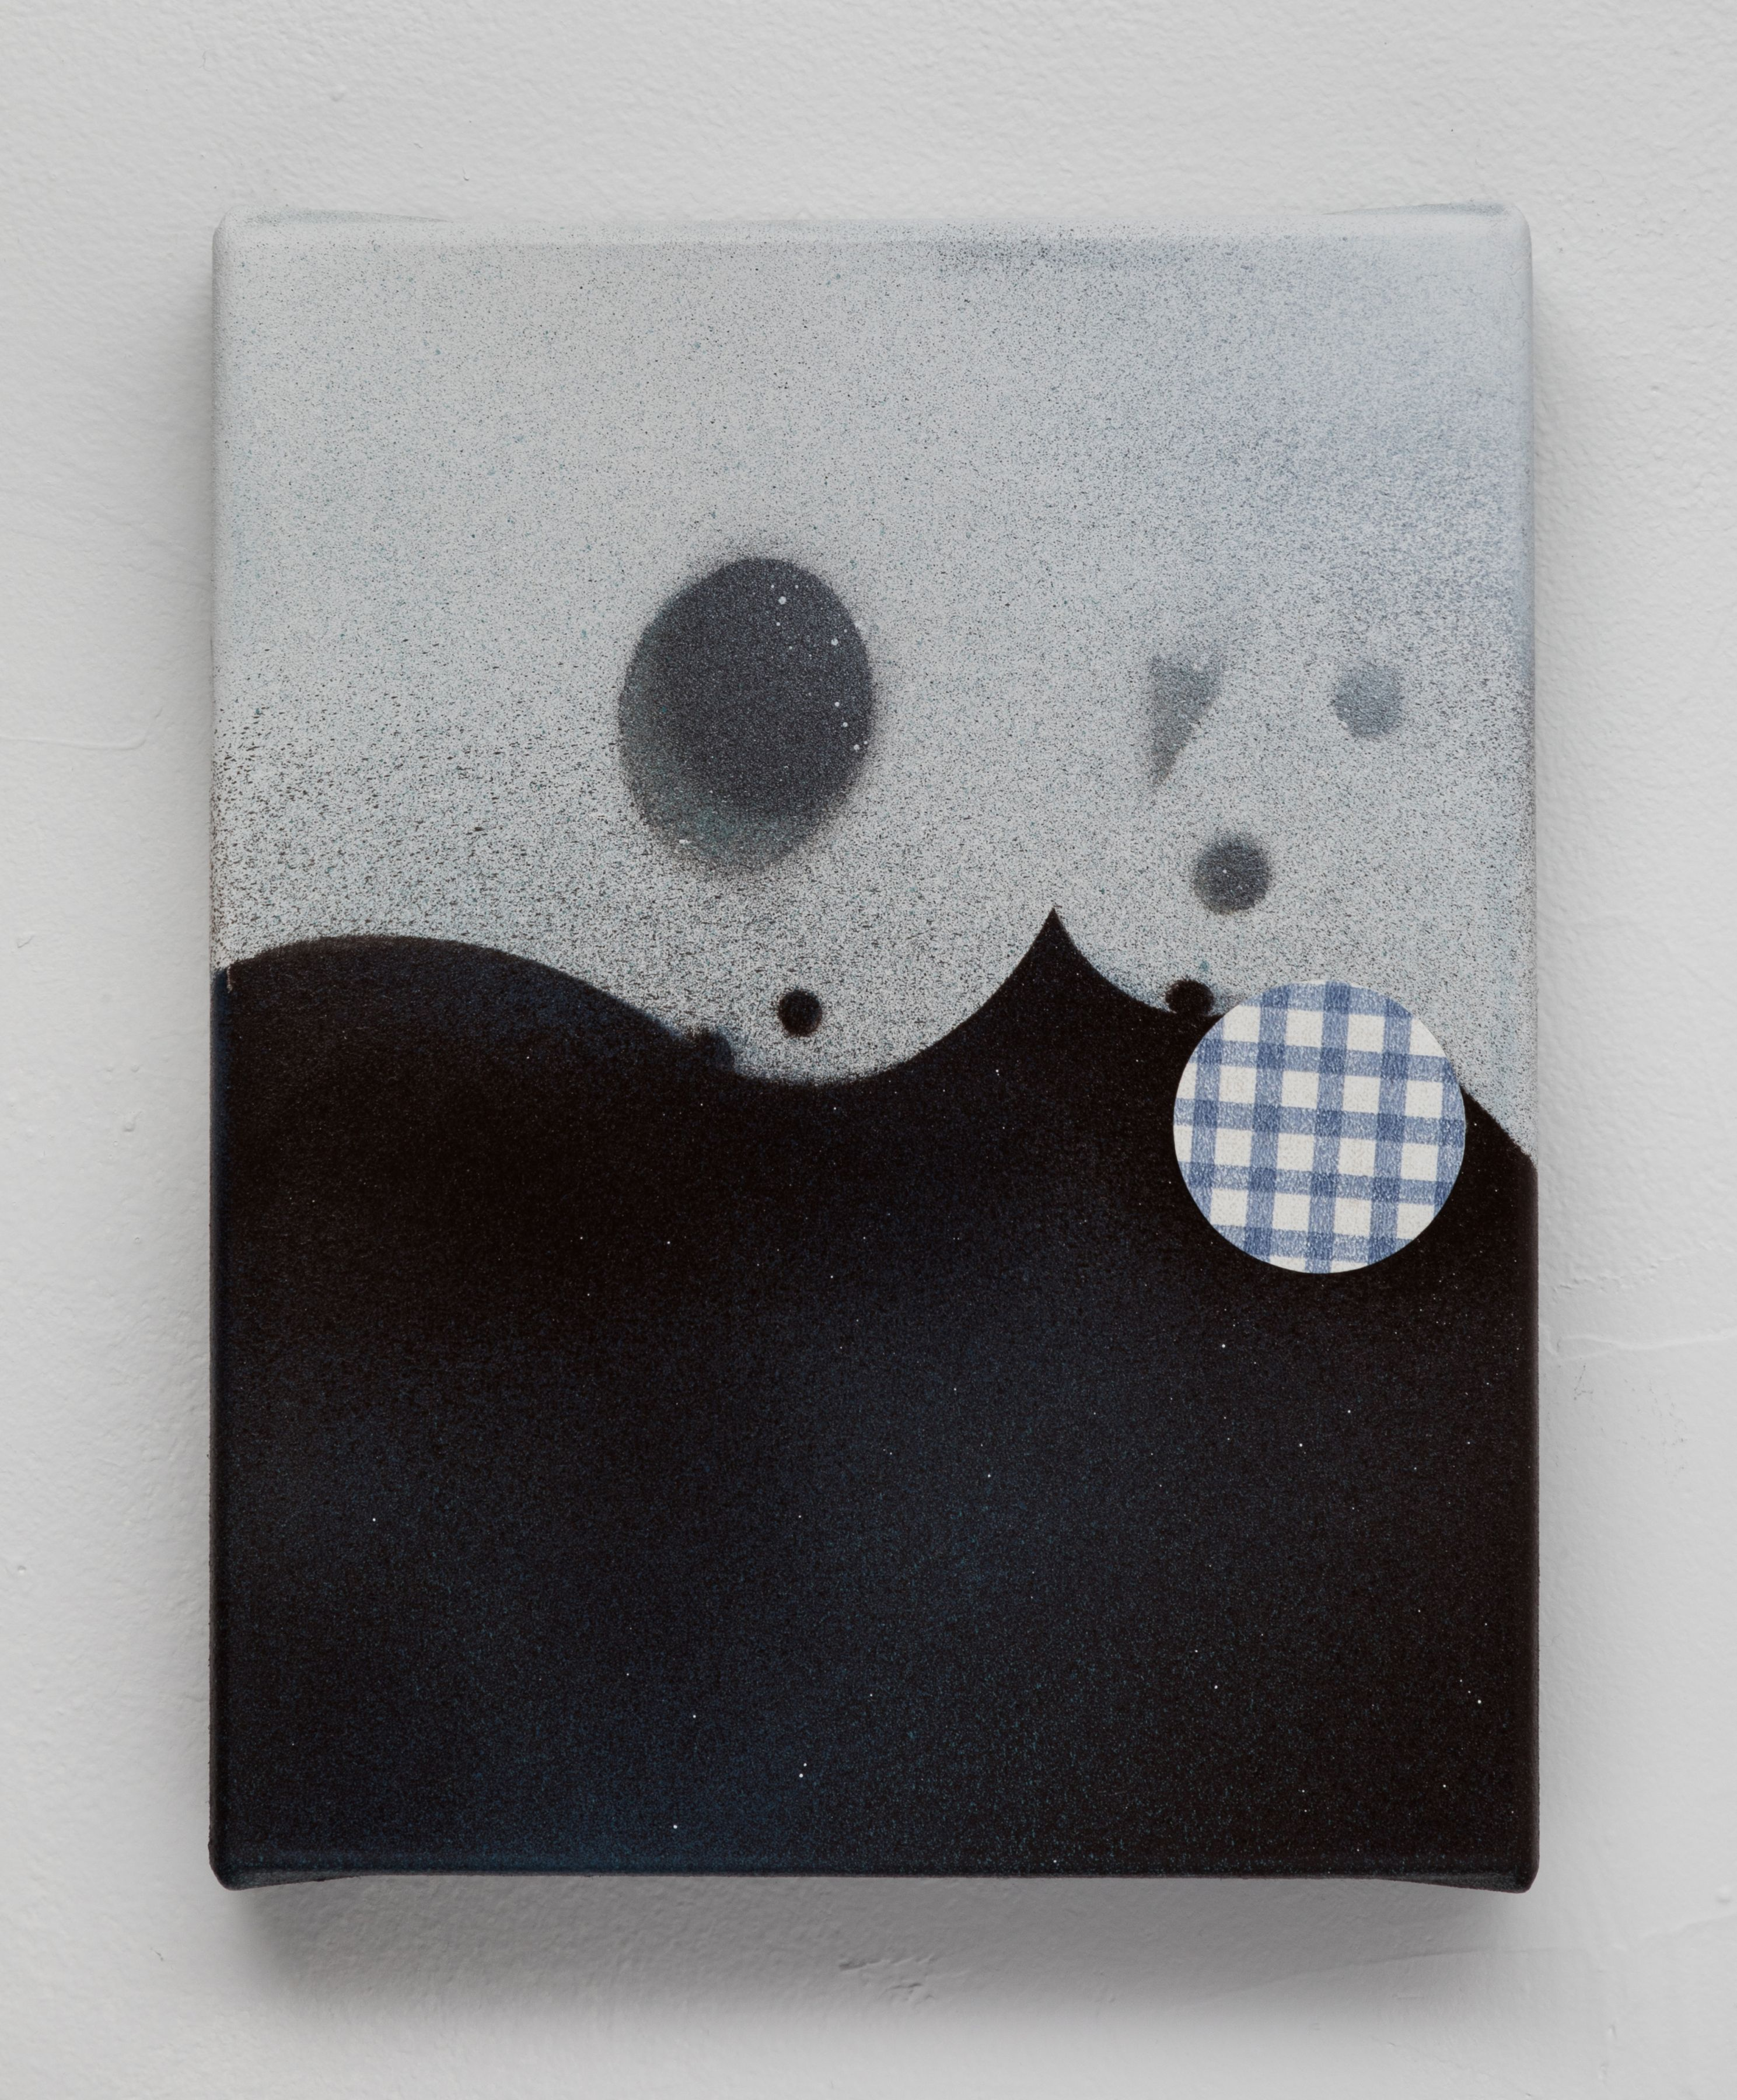 """George Negroponte. My Miro. 2018. Mixed Media on Canvas. 10"""" x 8"""" at Anita Rogers Gallery"""